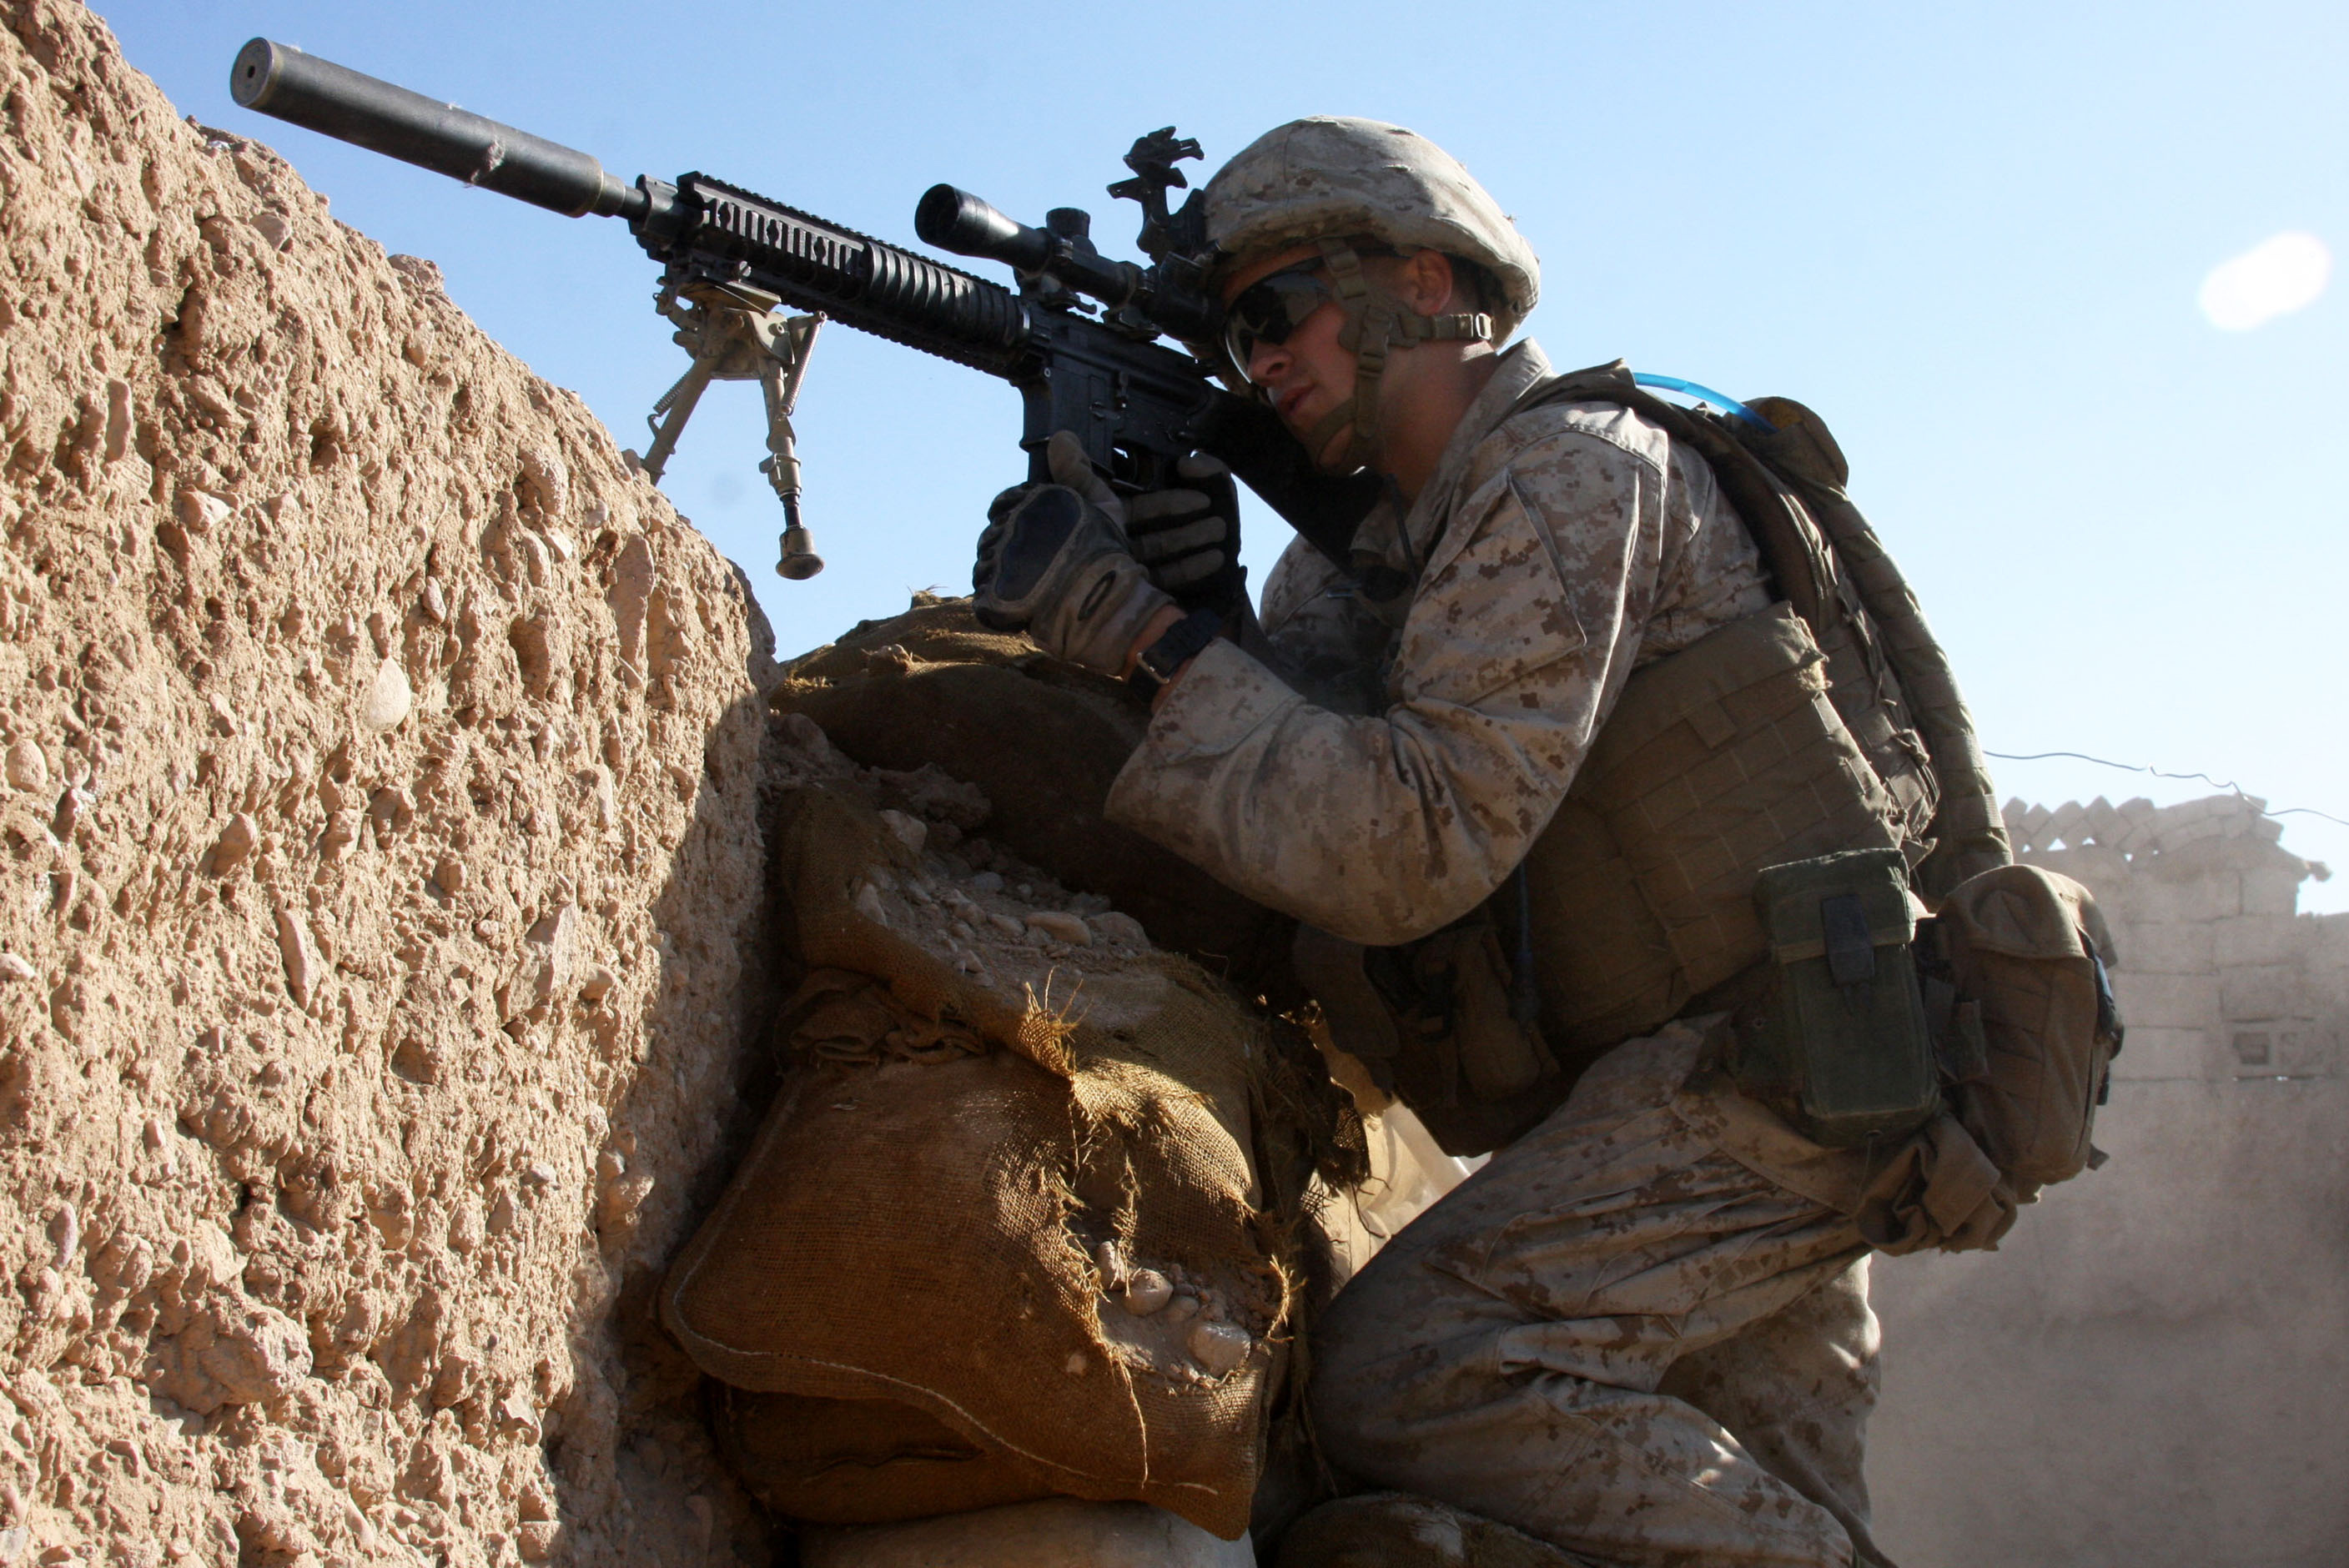 U.S. Marine Corps Lance Cpl. Steven J. Zandstra provides security at a checkpoint in Sangin, Helmand province, Afghanistan, on Nov. 1, 2010. Zandstra is assigned to Police Advisor Team 1, 3rd Battalion, 5th Marine Regiment, Regimental Combat Team 2, whose mission is to conduct counterinsurgency operations in partnership with the International Security Assistance Force. DoD photo by Lance Cpl. Jorge A. Ortiz, U.S. Marine Corps. (Released)